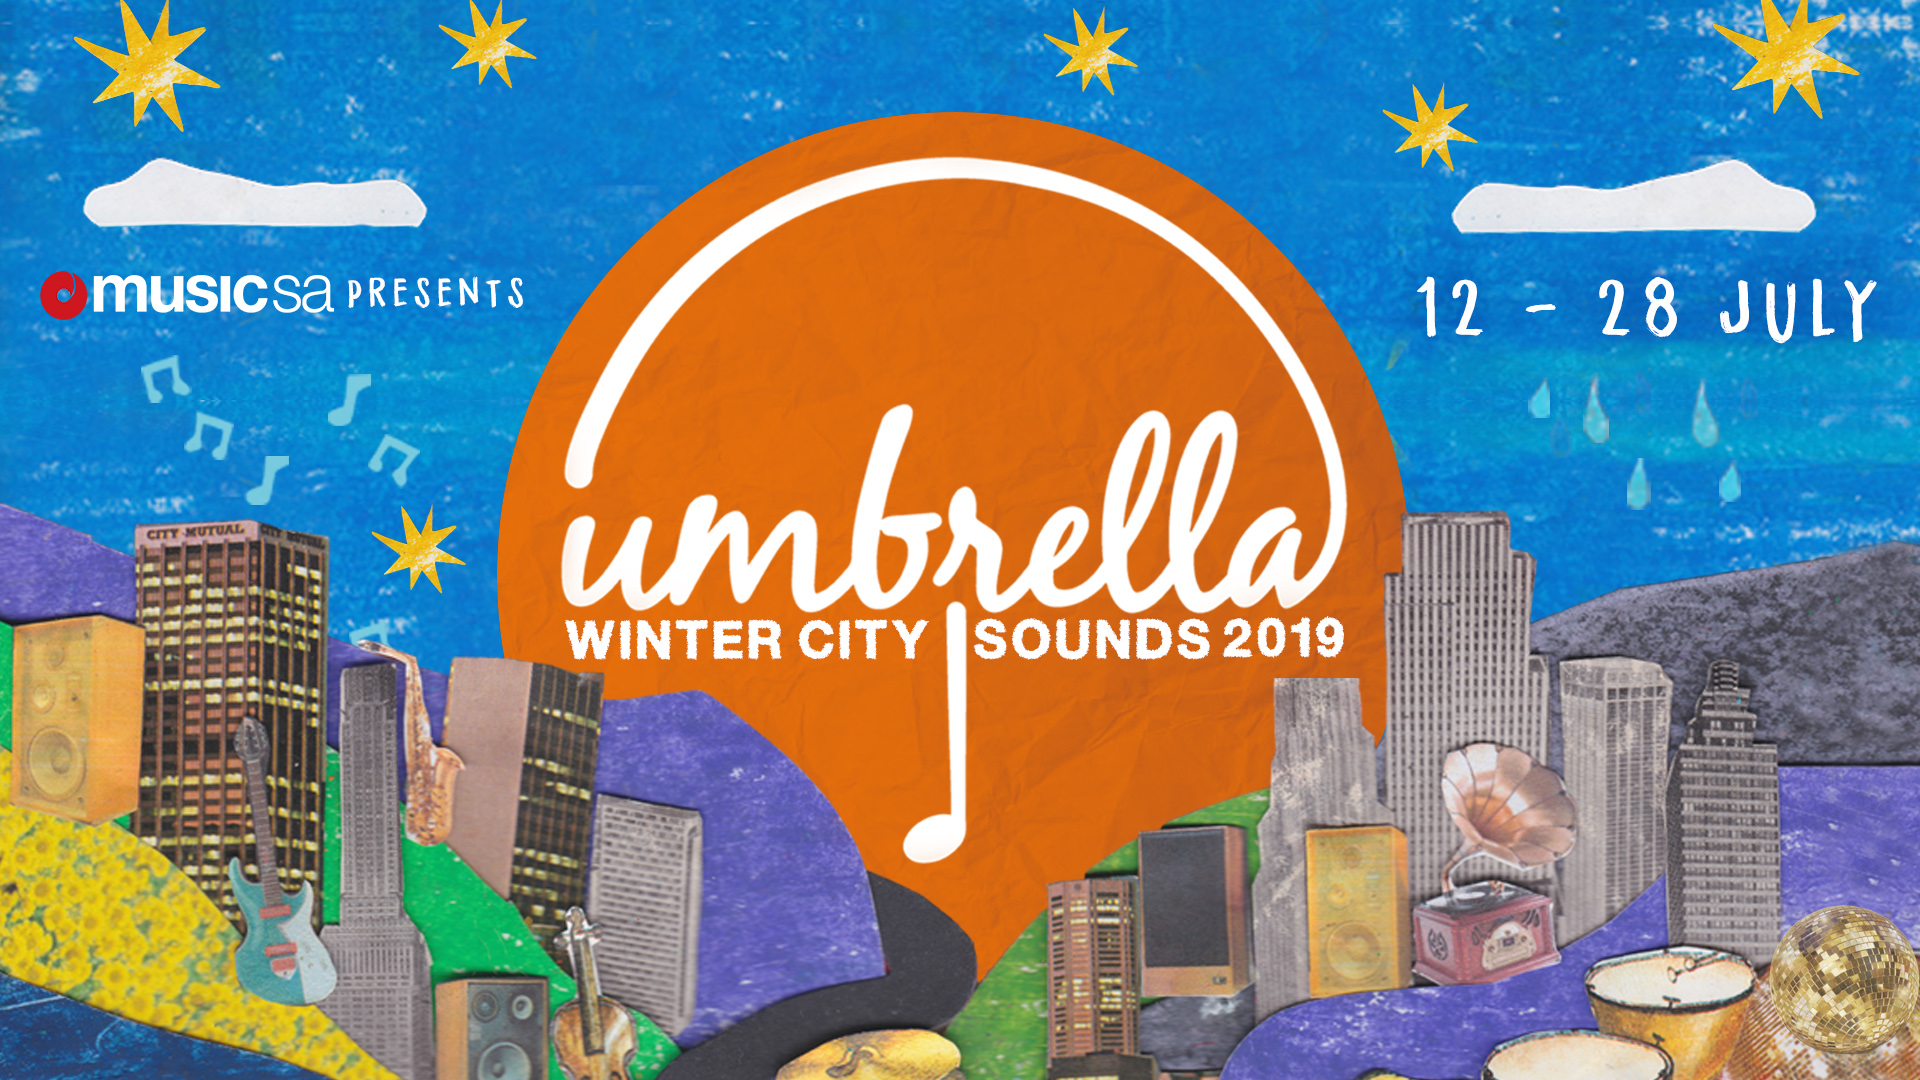 Umbrella Winter City Sounds is Back for 2019!